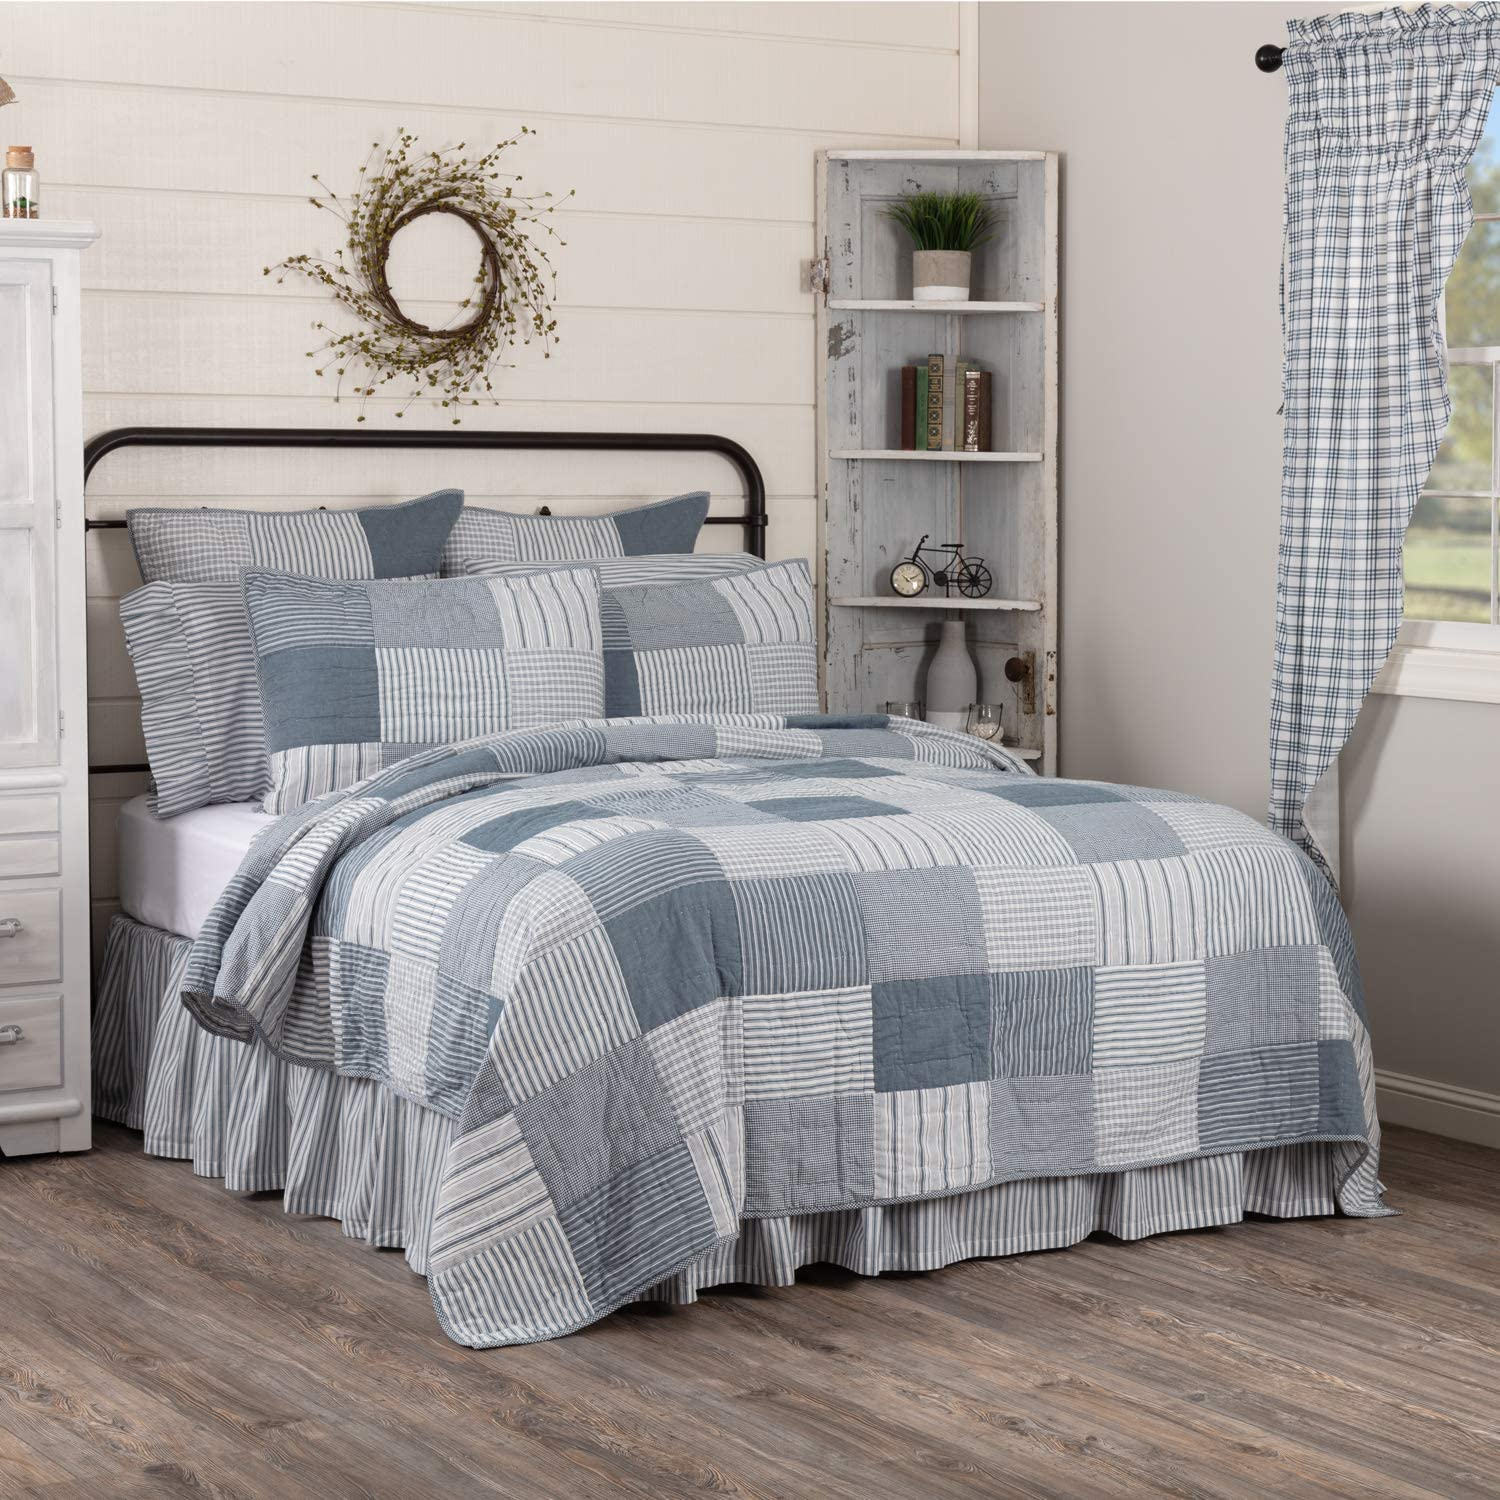 Amazon Com Vhc Brands Sawyer Mill Blue Farmhouse Patchwork Luxury Oversized King 100 Cotton Reversible Quilted Bedspread 120x105 Bedding Accessory Lux Home Kitchen